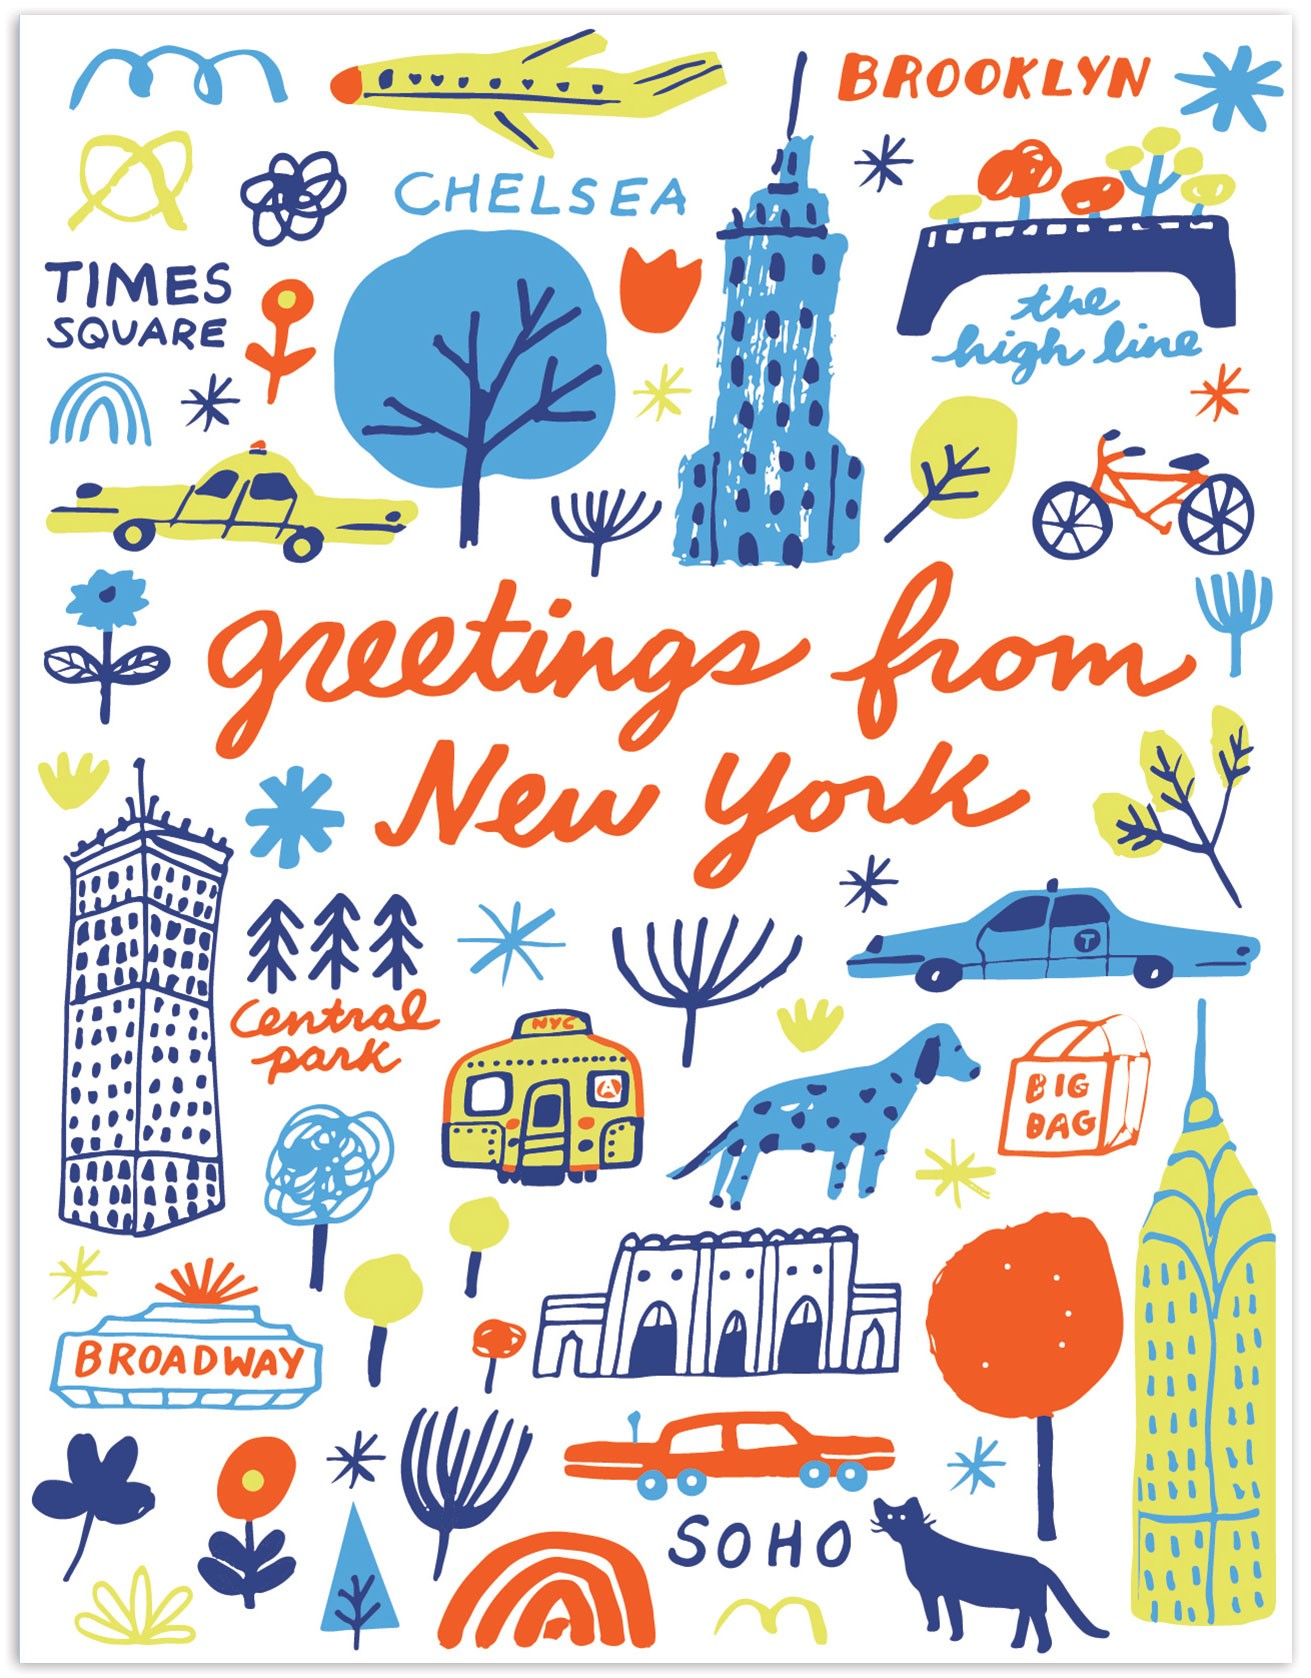 The Found Greetings From New York Landmarks